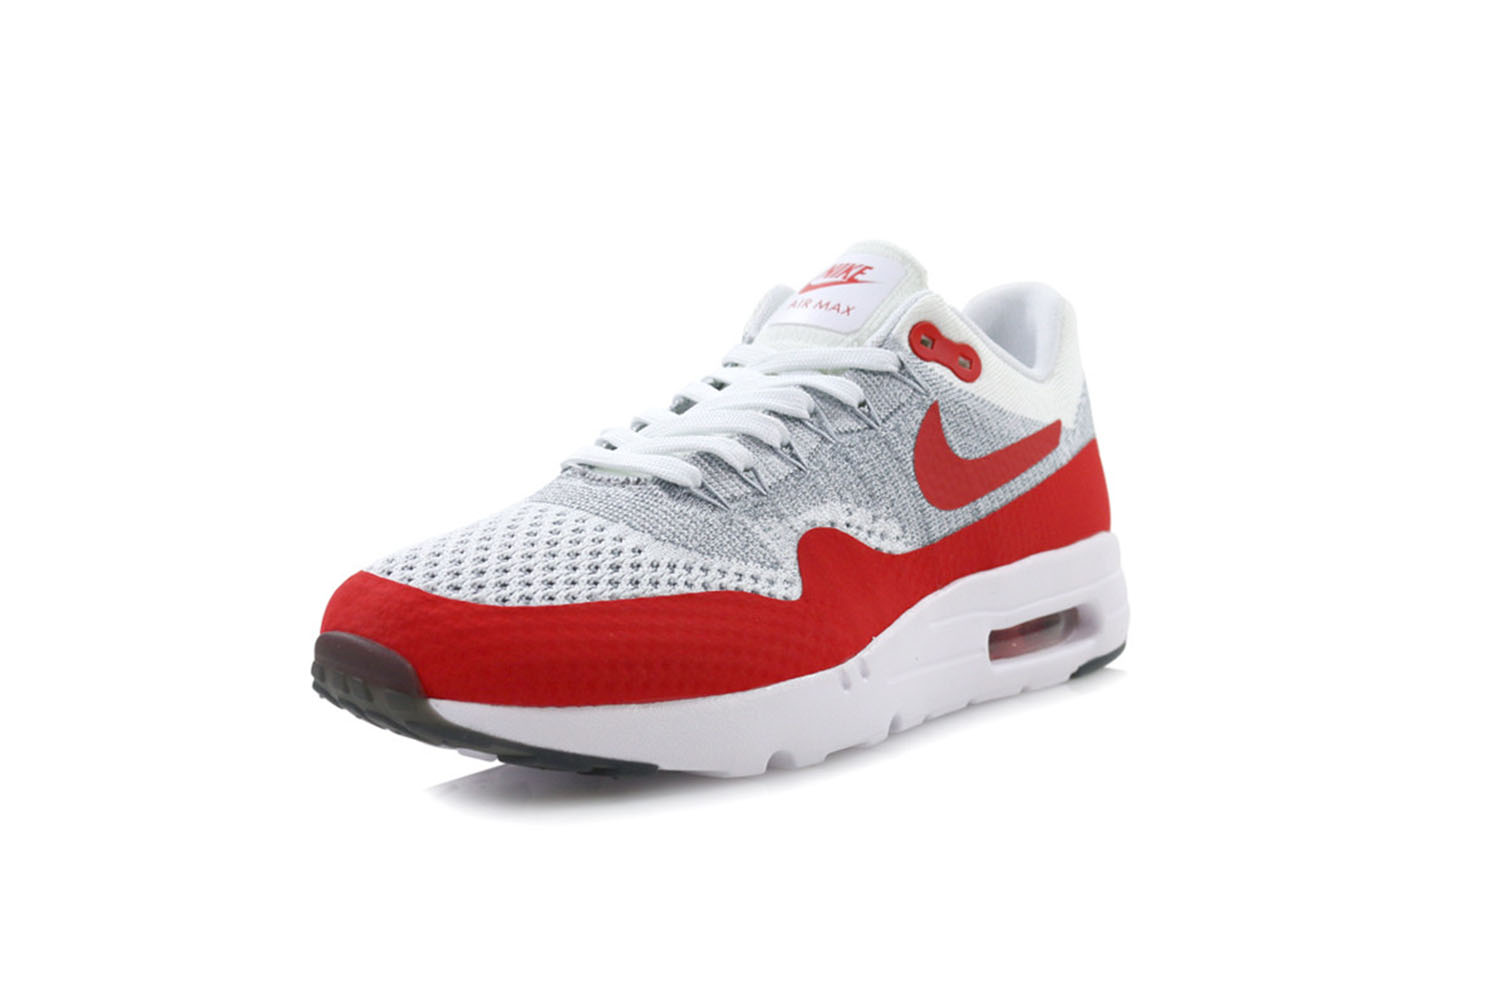 8a9579537937 Nike has just released the long awaited Air Max 1 Ultra Flyknit.  Reconstructing the iconic Nike Air Max 1 model with the ultra-light  material of Flyknit.